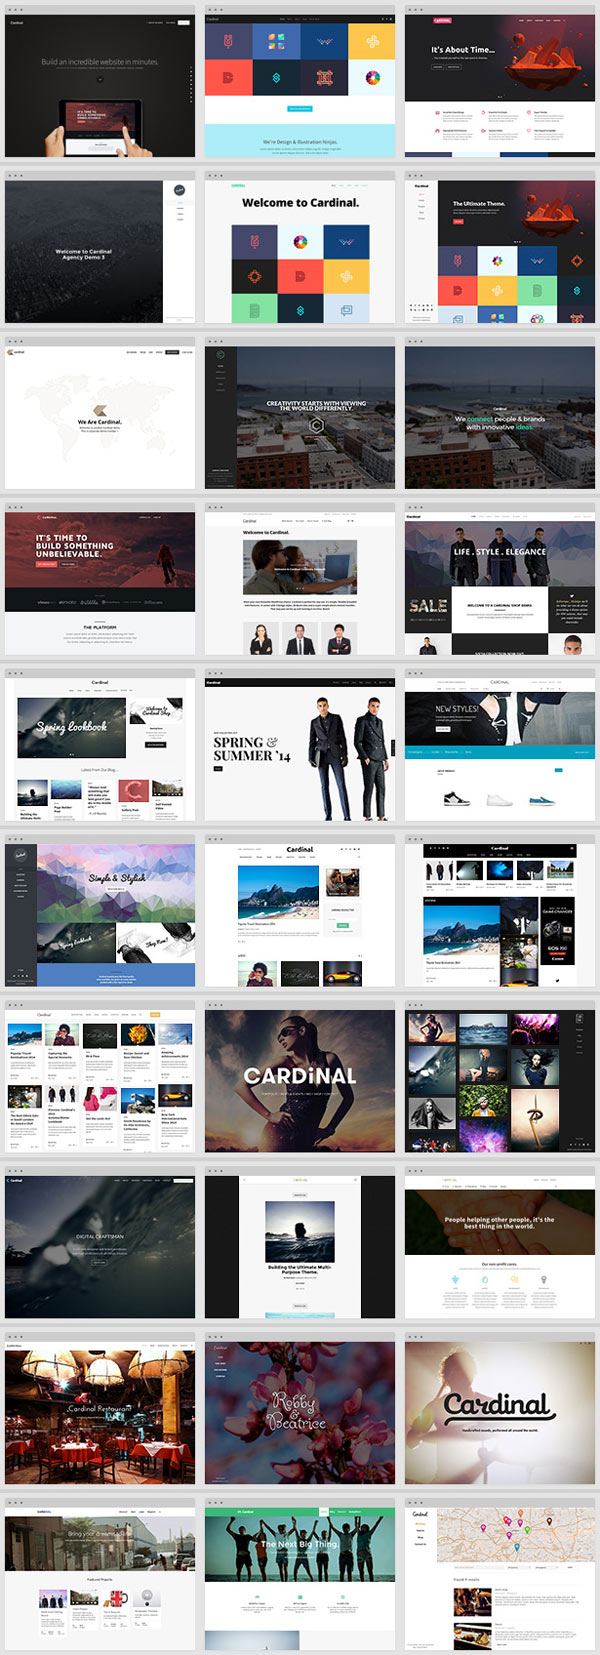 Cardinal WordPress Theme for Multiple-Purpose